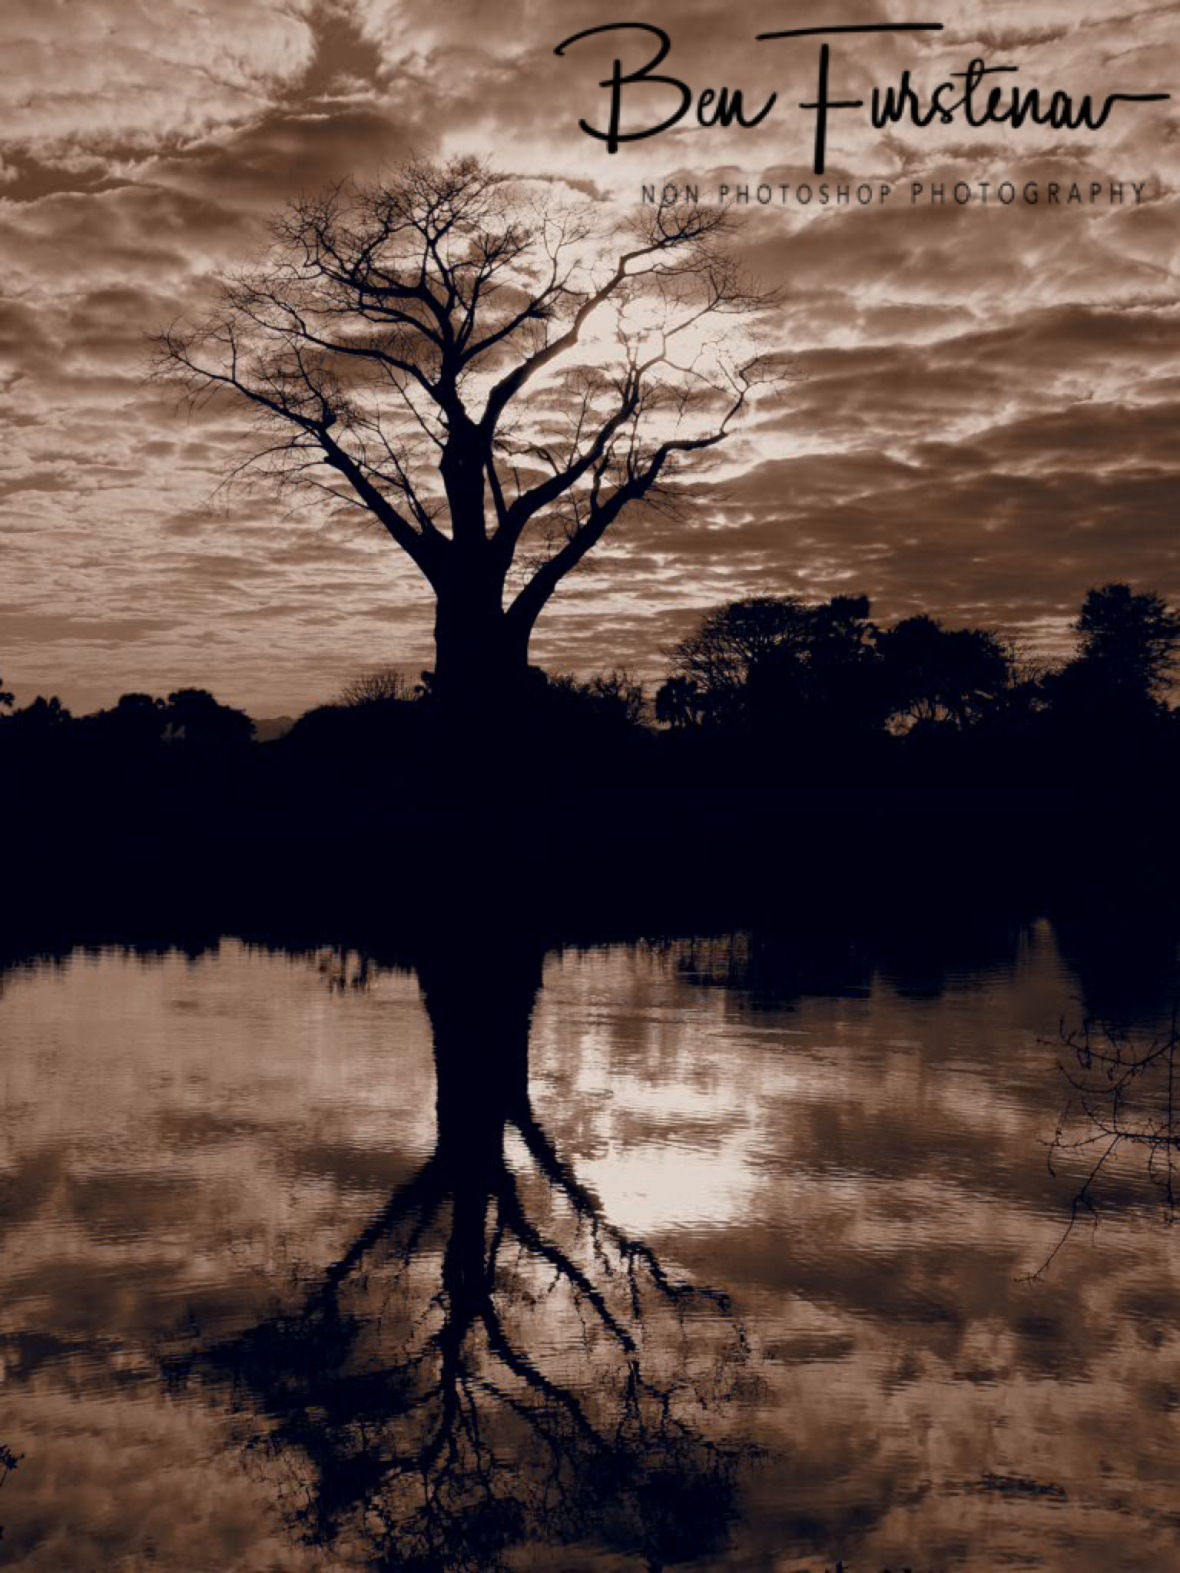 Baobab reflections in sepia, Lower Zambezi Valley, Zambia